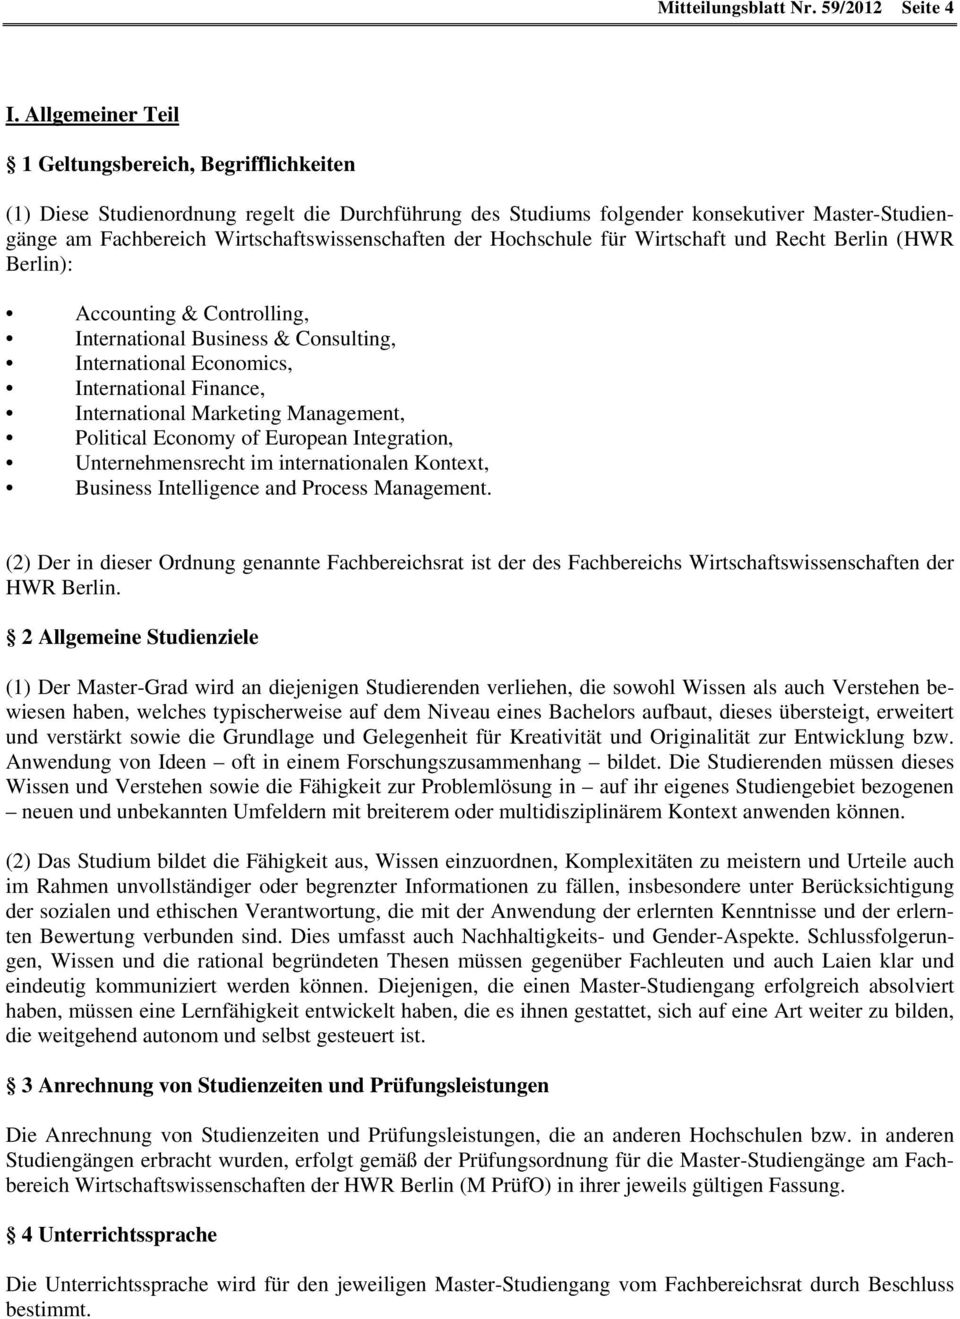 der Hochschule für Wirtschaft und Recht Berlin (HWR Berlin): Accounting & Controlling, International Business & Consulting, International Economics, International Finance, International Marketing